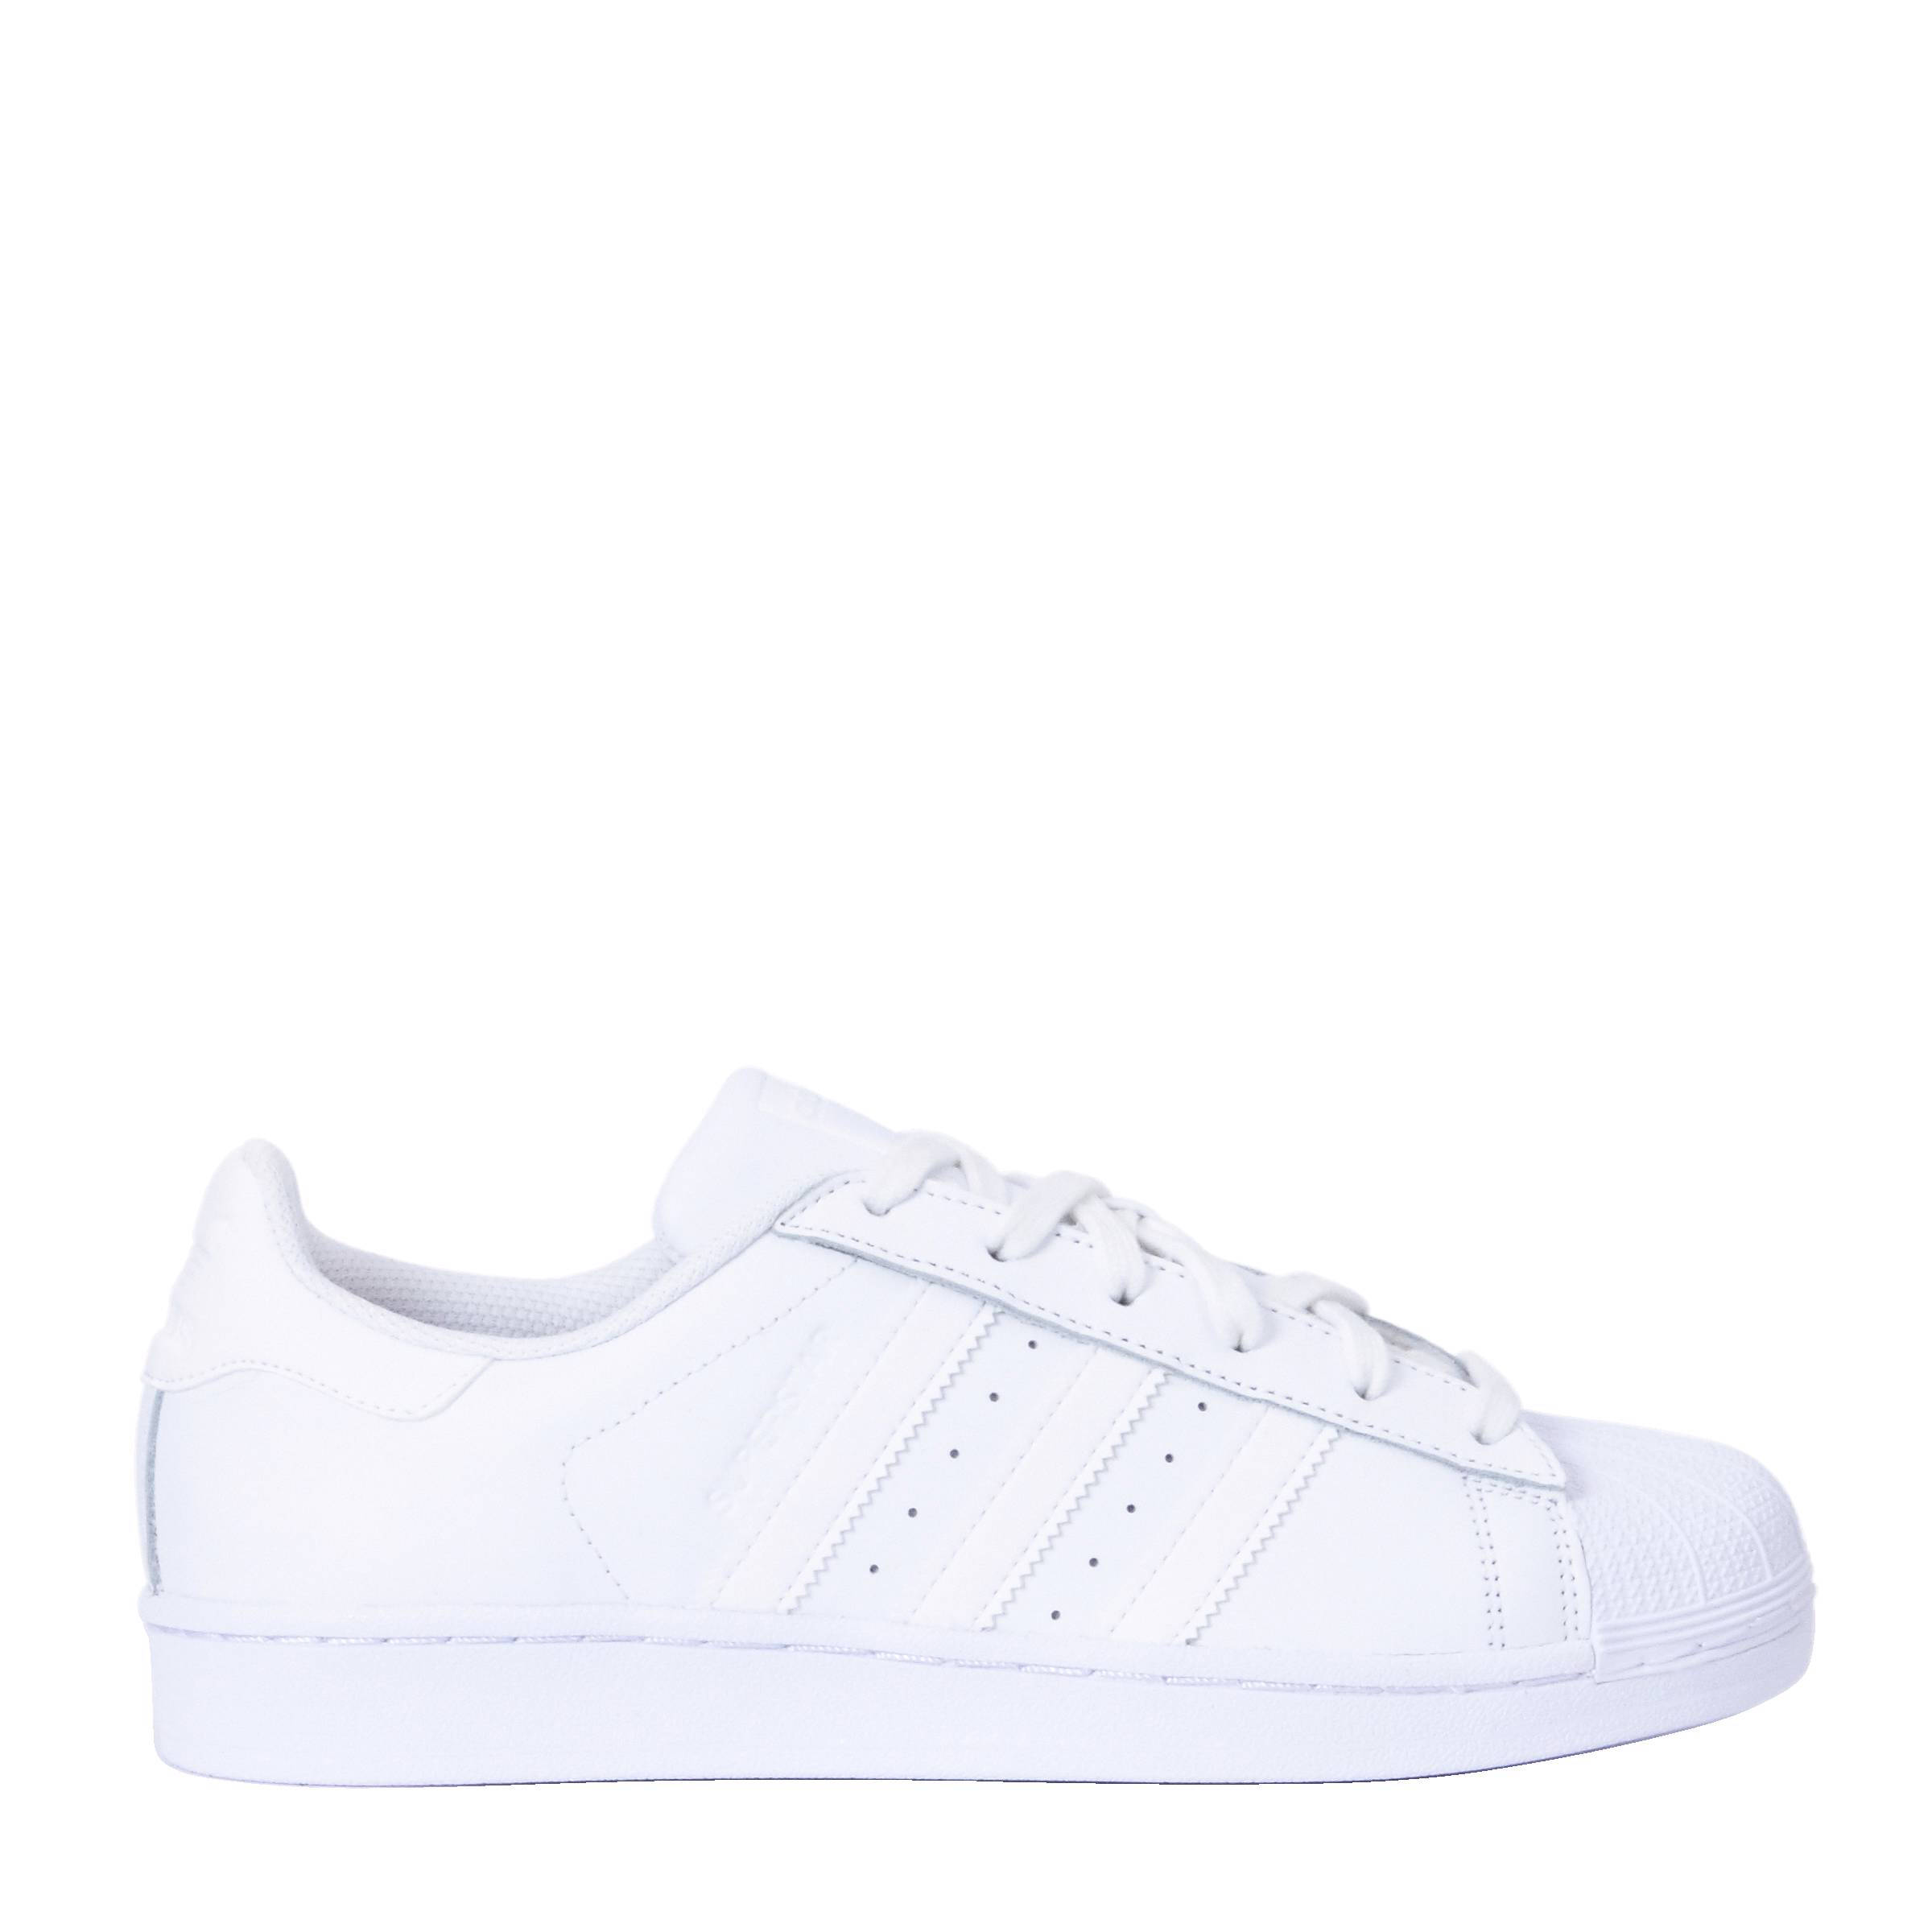 verschil adidas superstar dames en heren